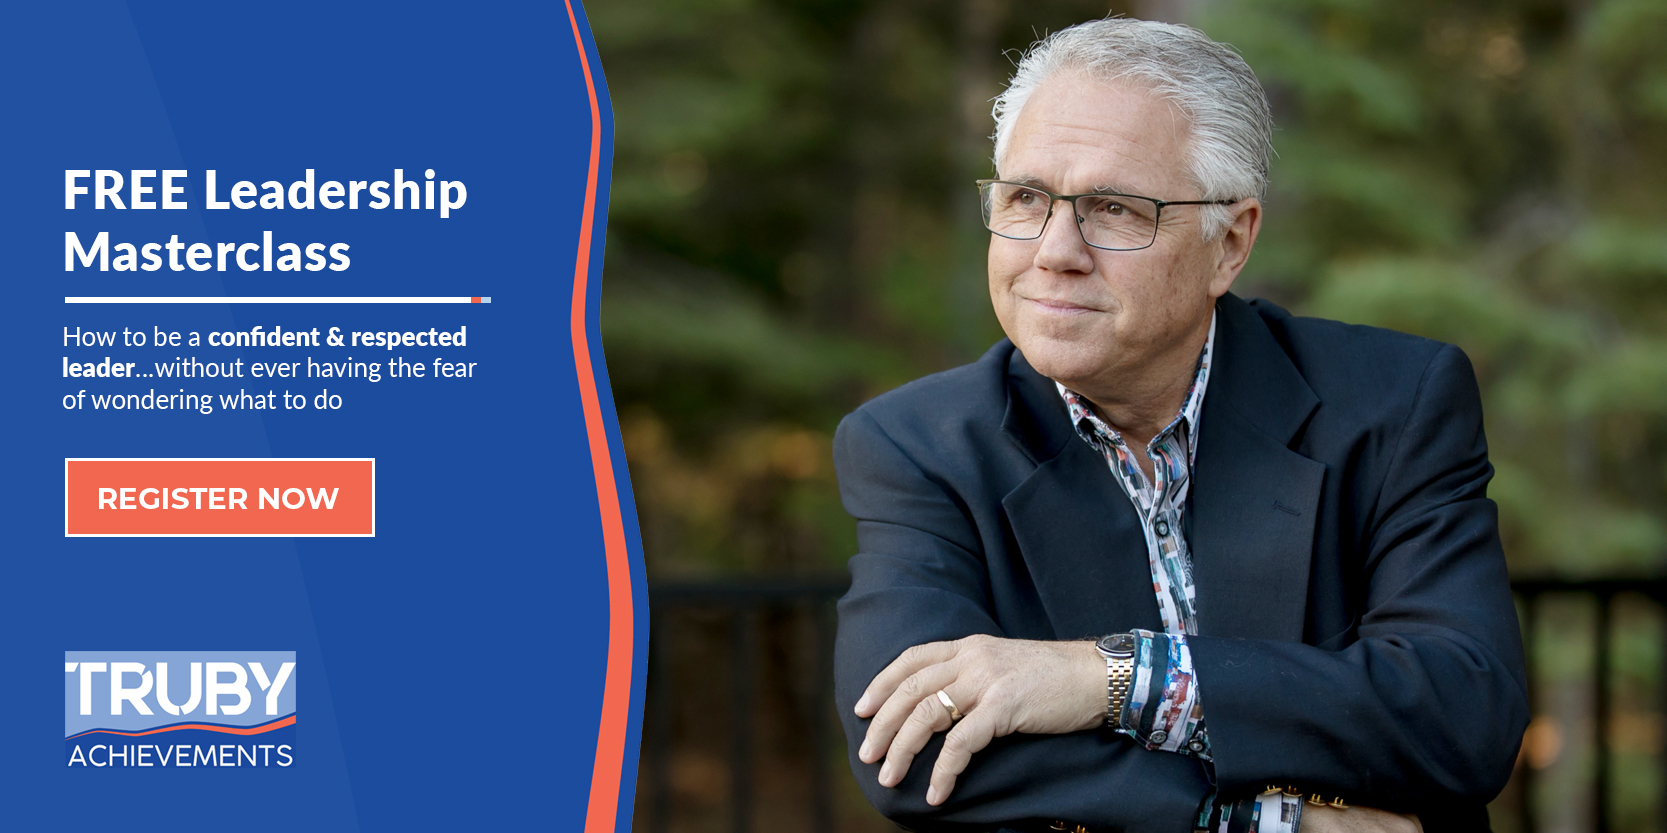 photo of bill truby and text for free leadership masterclass to become a more confident and successful leader